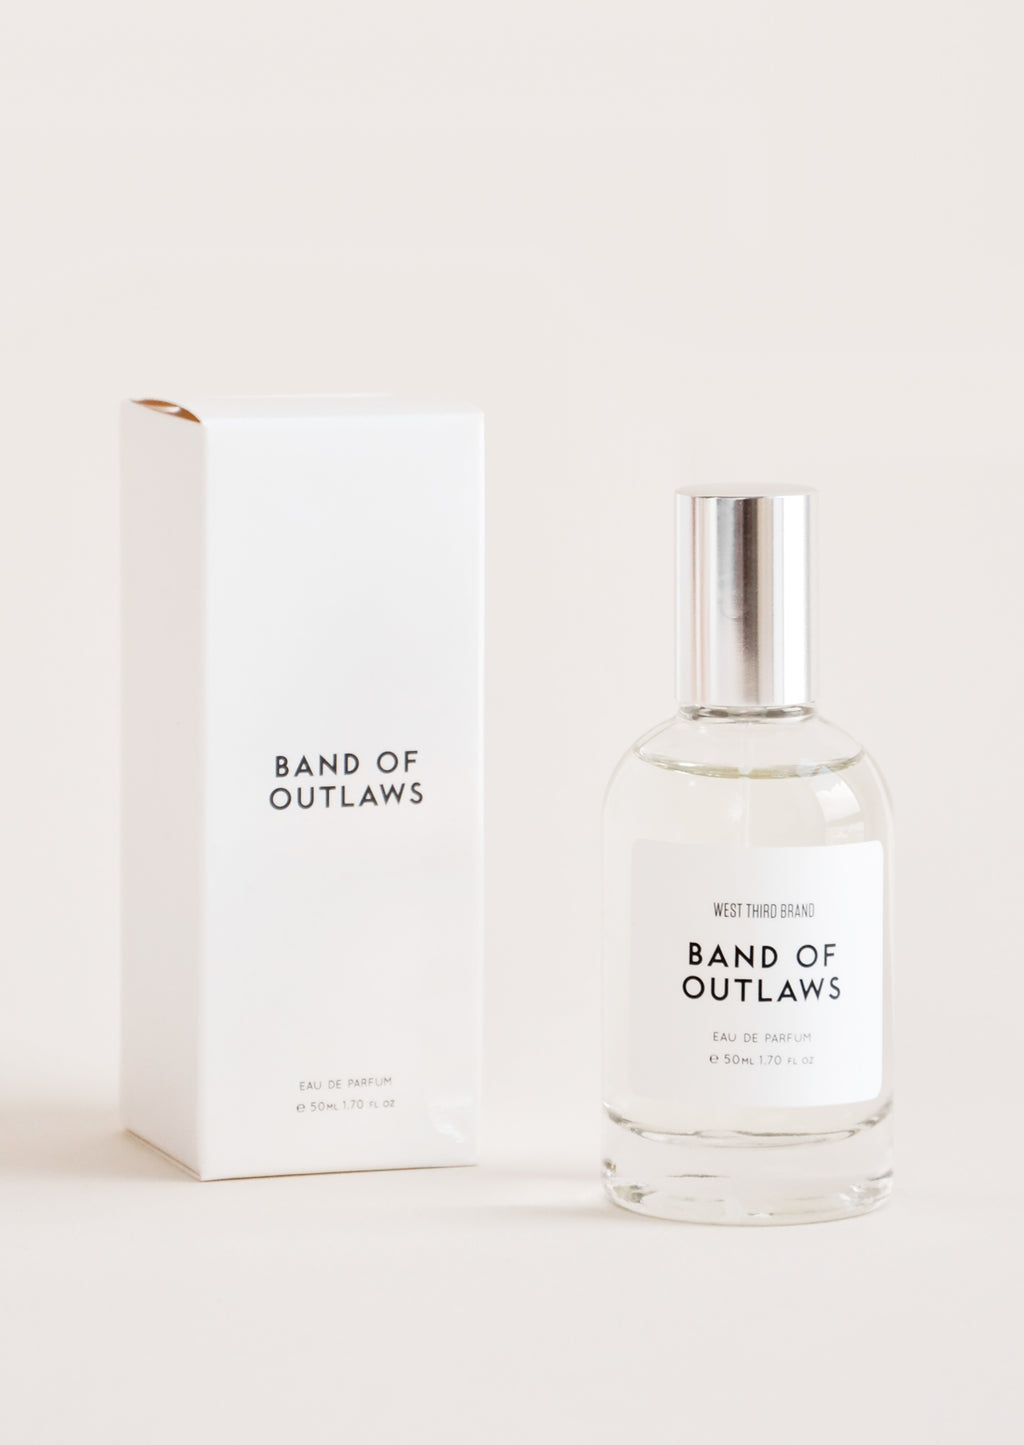 West Third Eau de Parfum